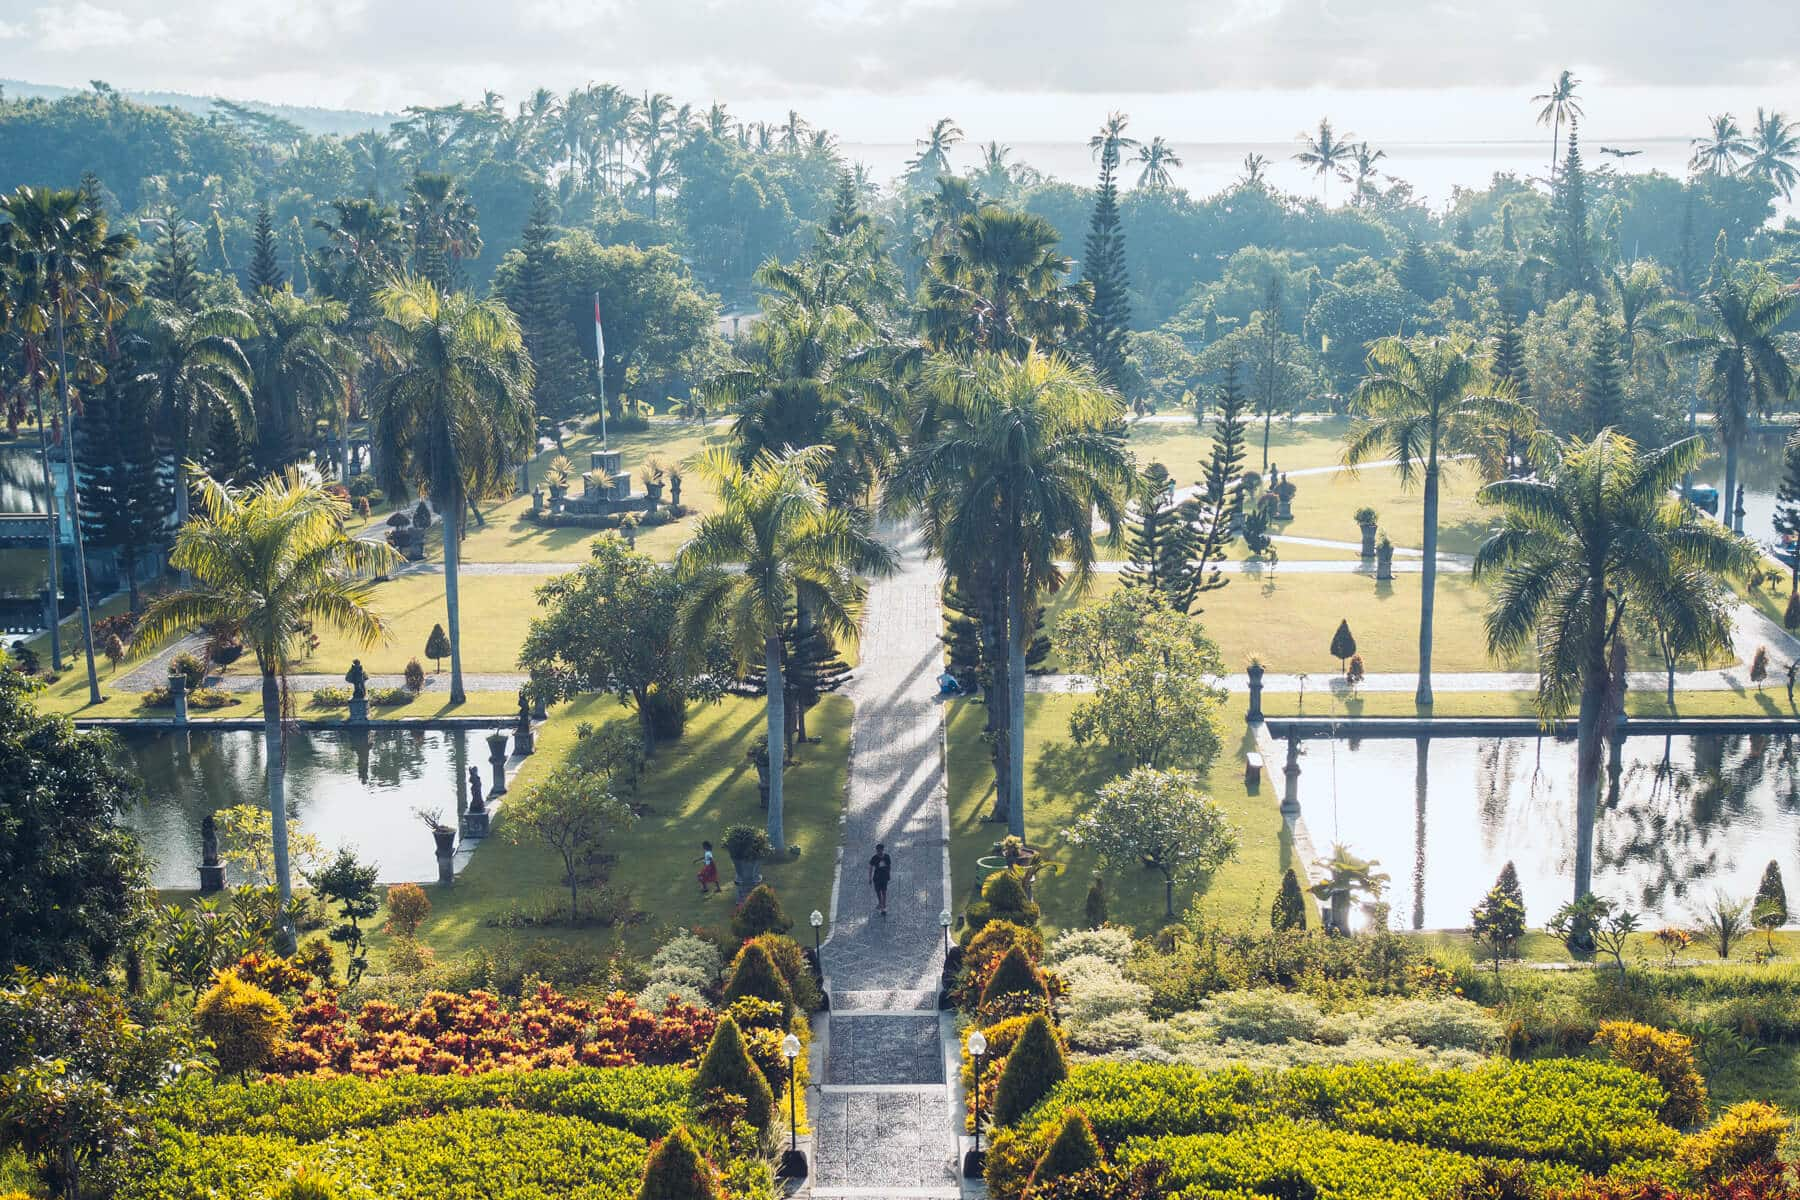 Taman Ujung Water Palace - One of my favorite places in East Bali